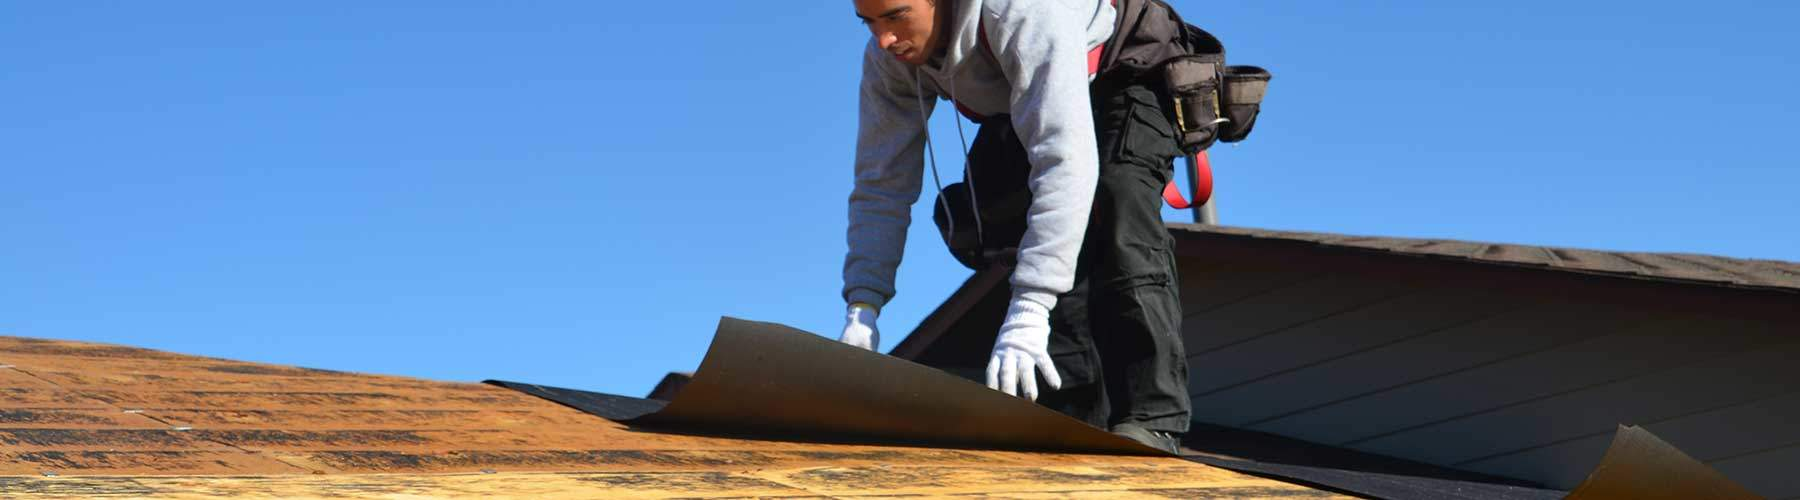 Roofing Technician